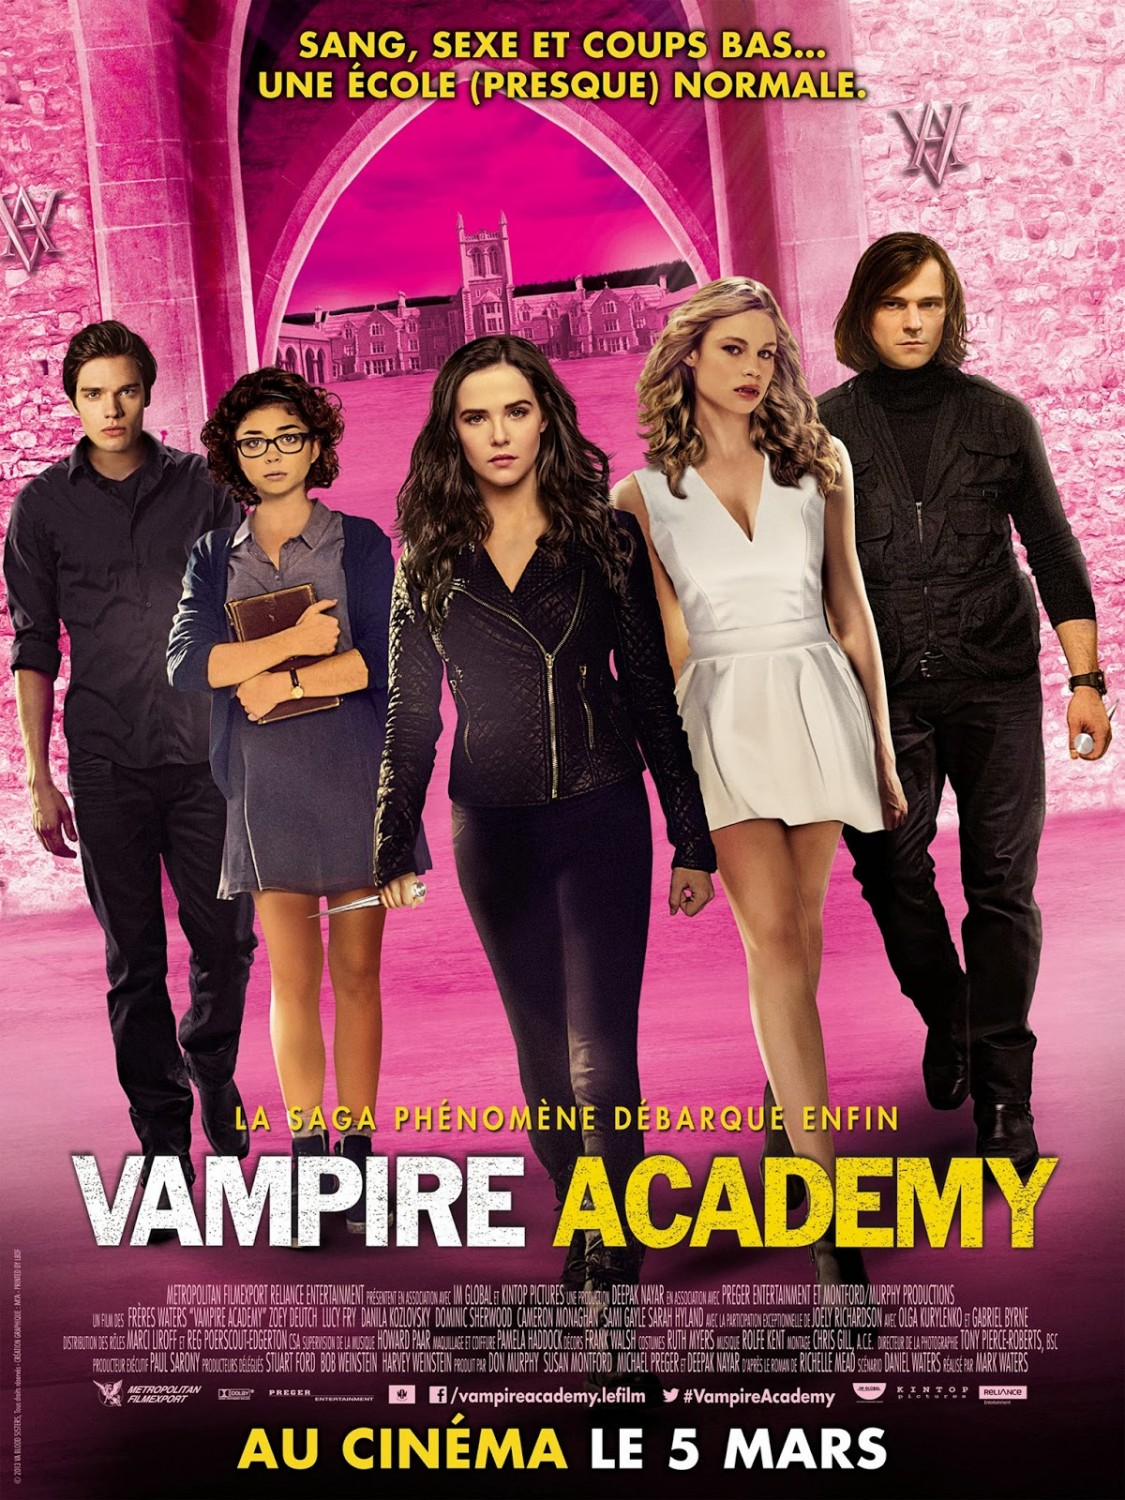 Vampire Academy-Official Poster Banner PROMO XLG INTERNATIONAL-18FEVEREIRO2014-02